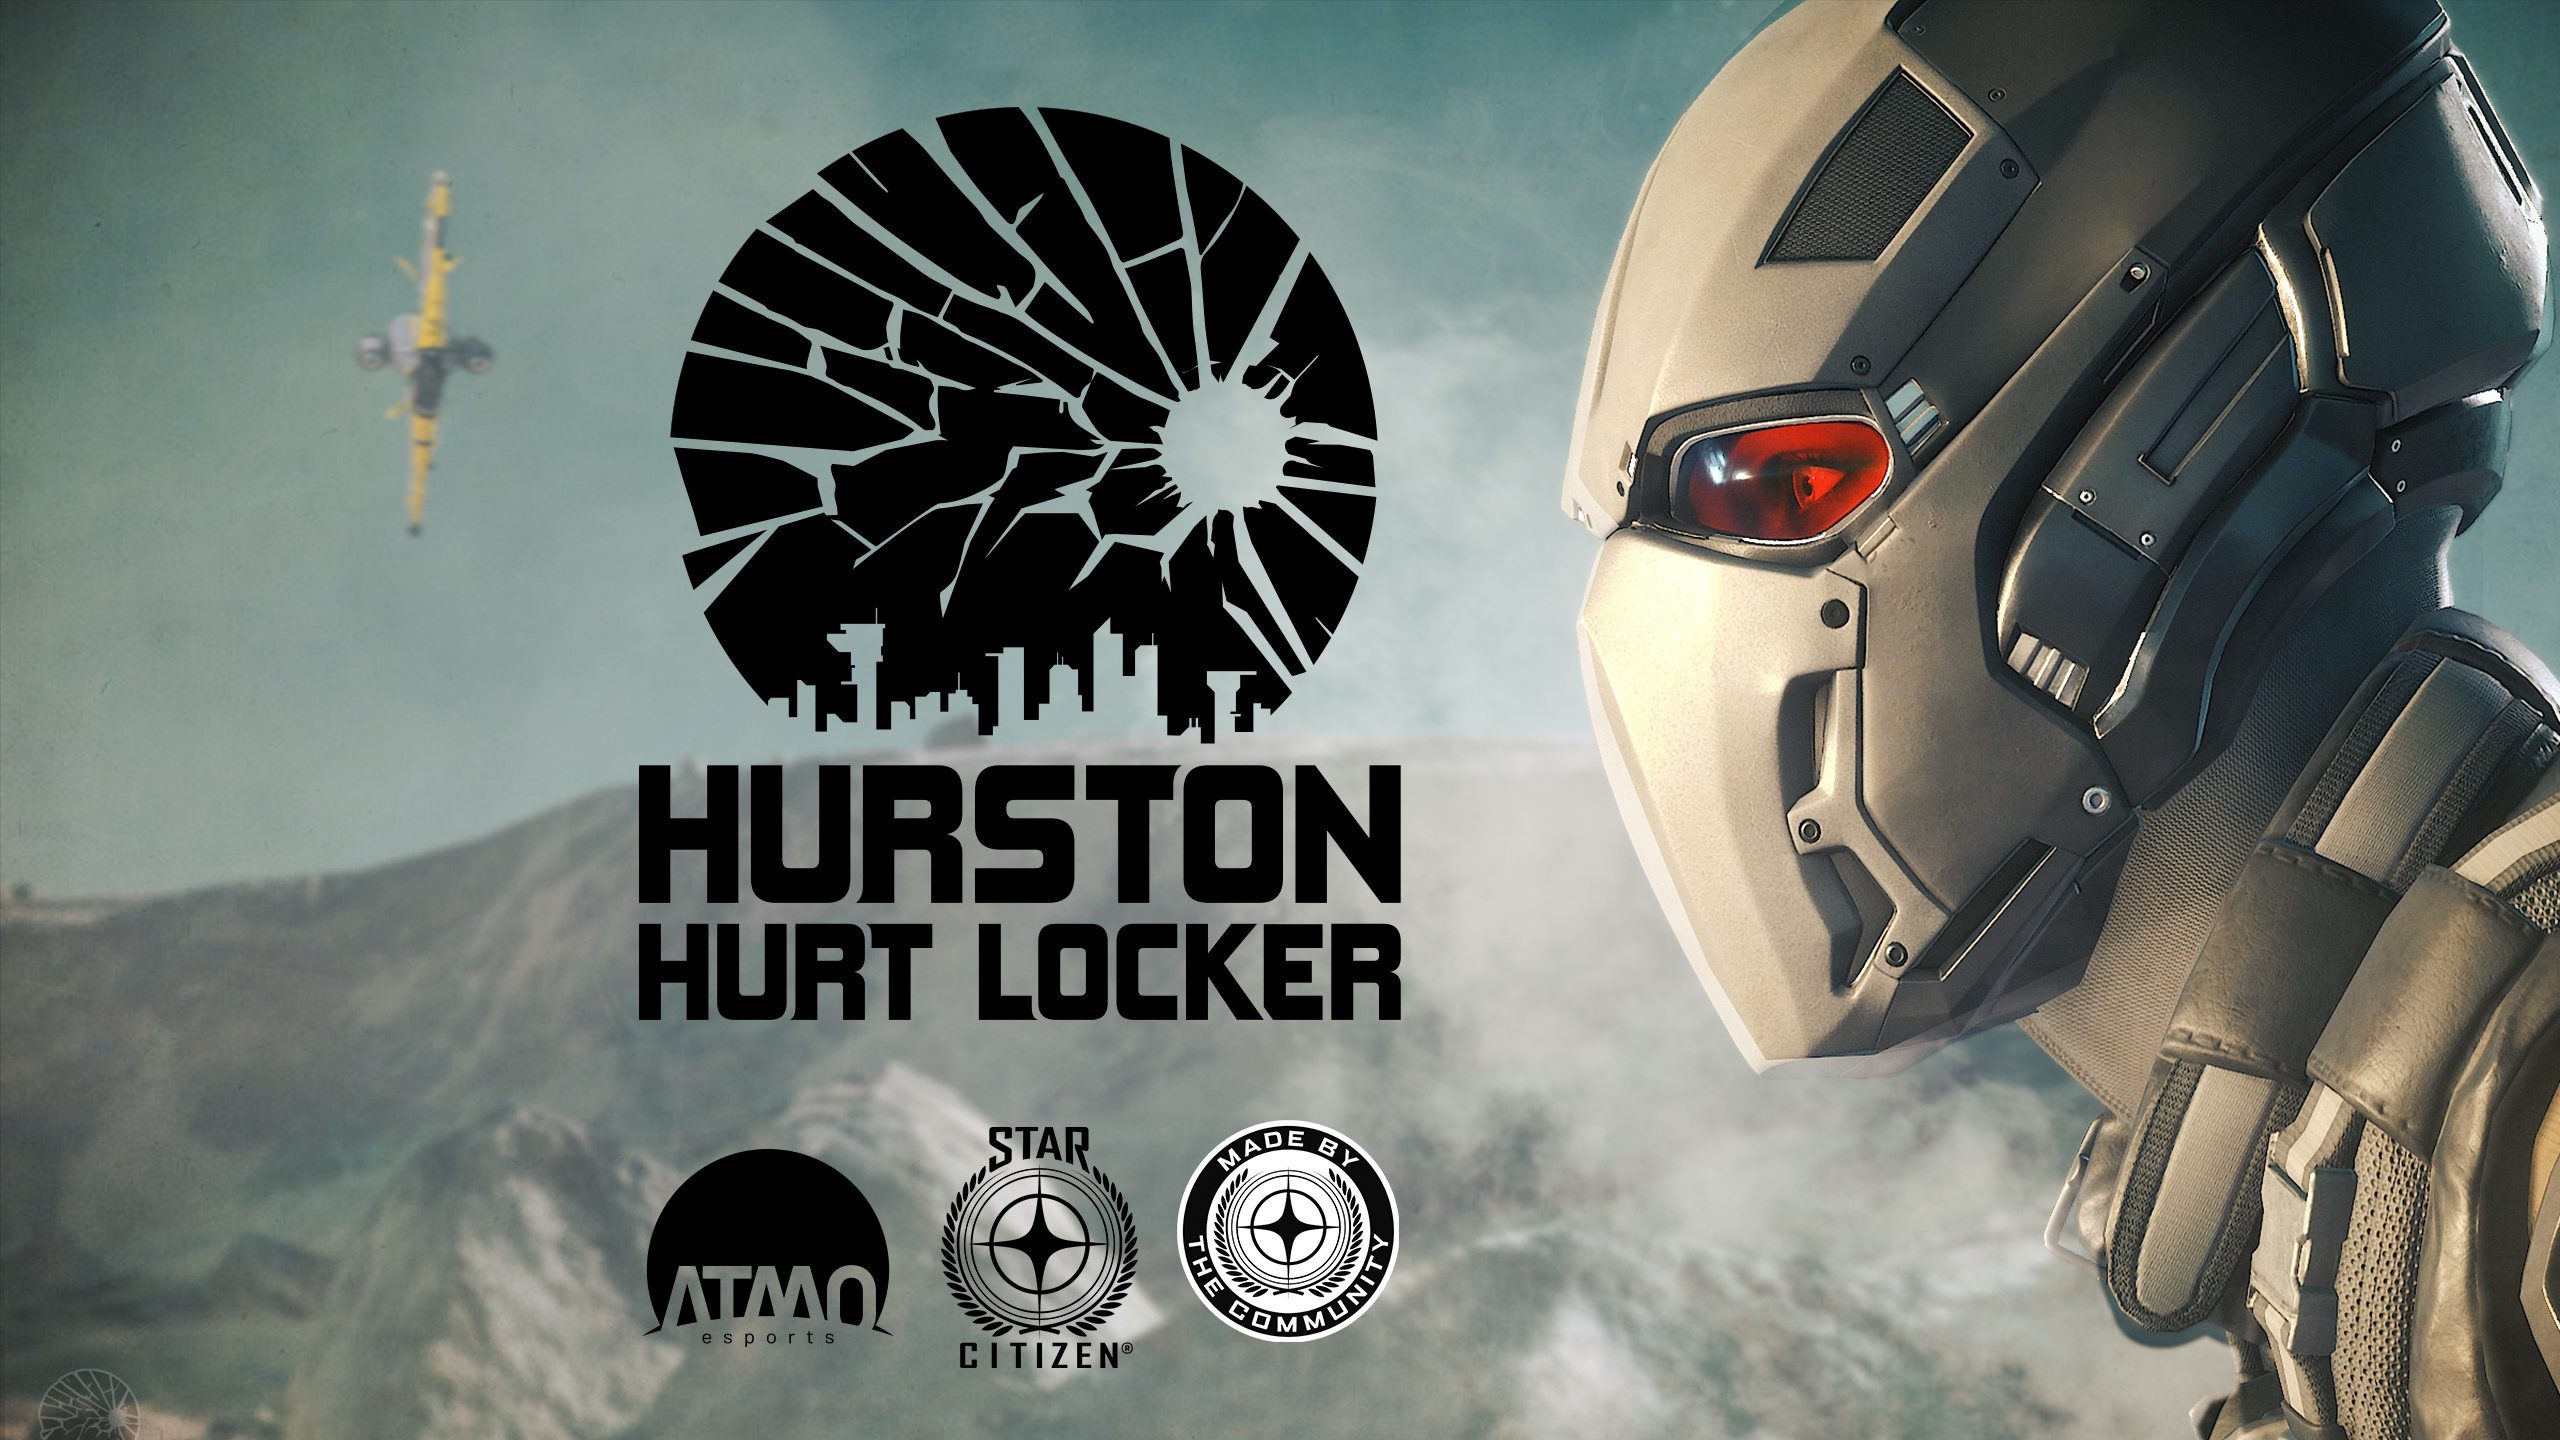 You are currently viewing Hurston Hurt Locker Promo Video